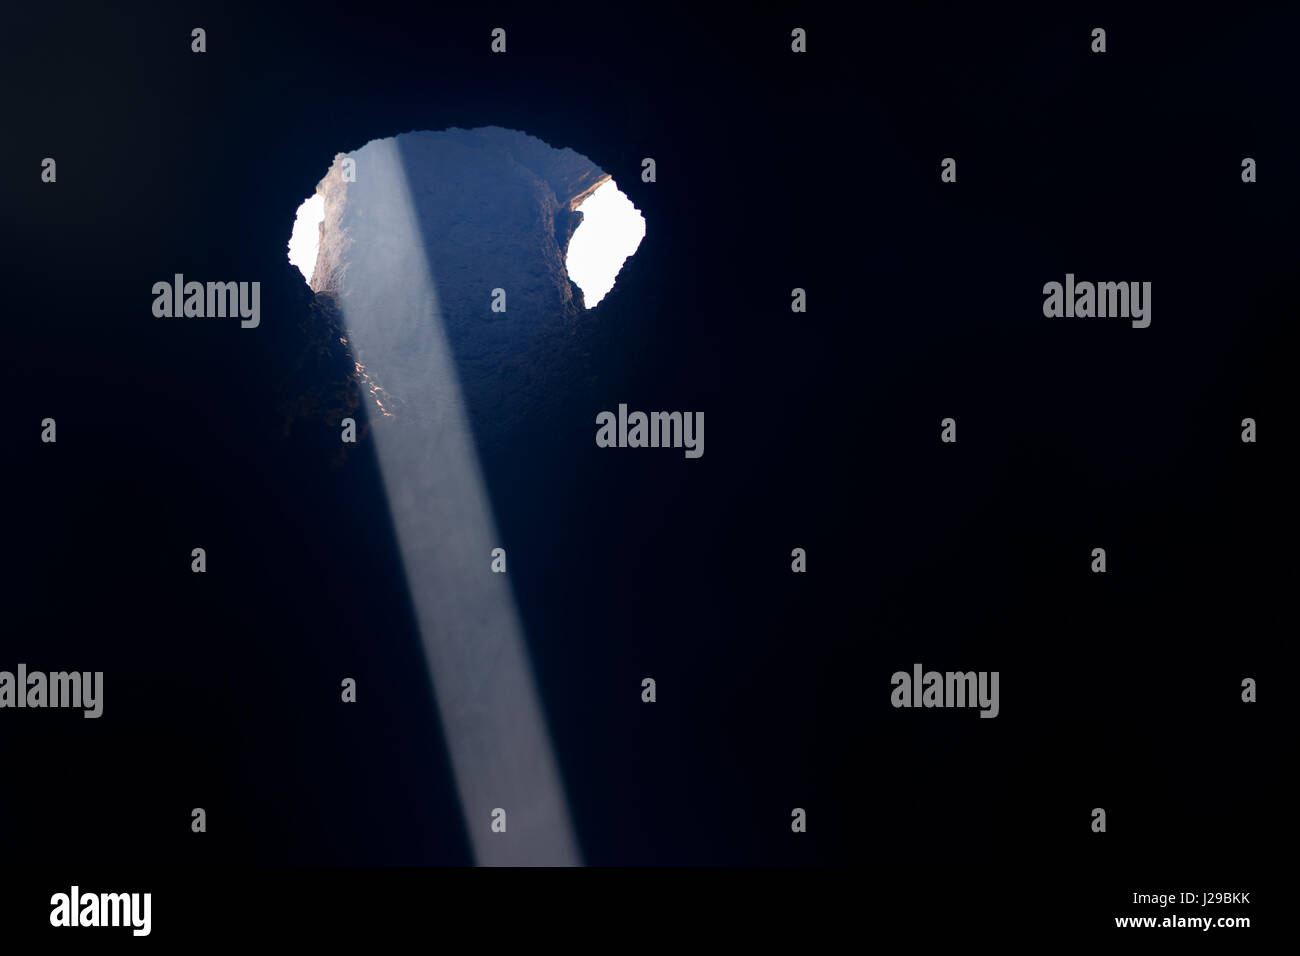 Beam of light from a ceiling opening - Stock Image